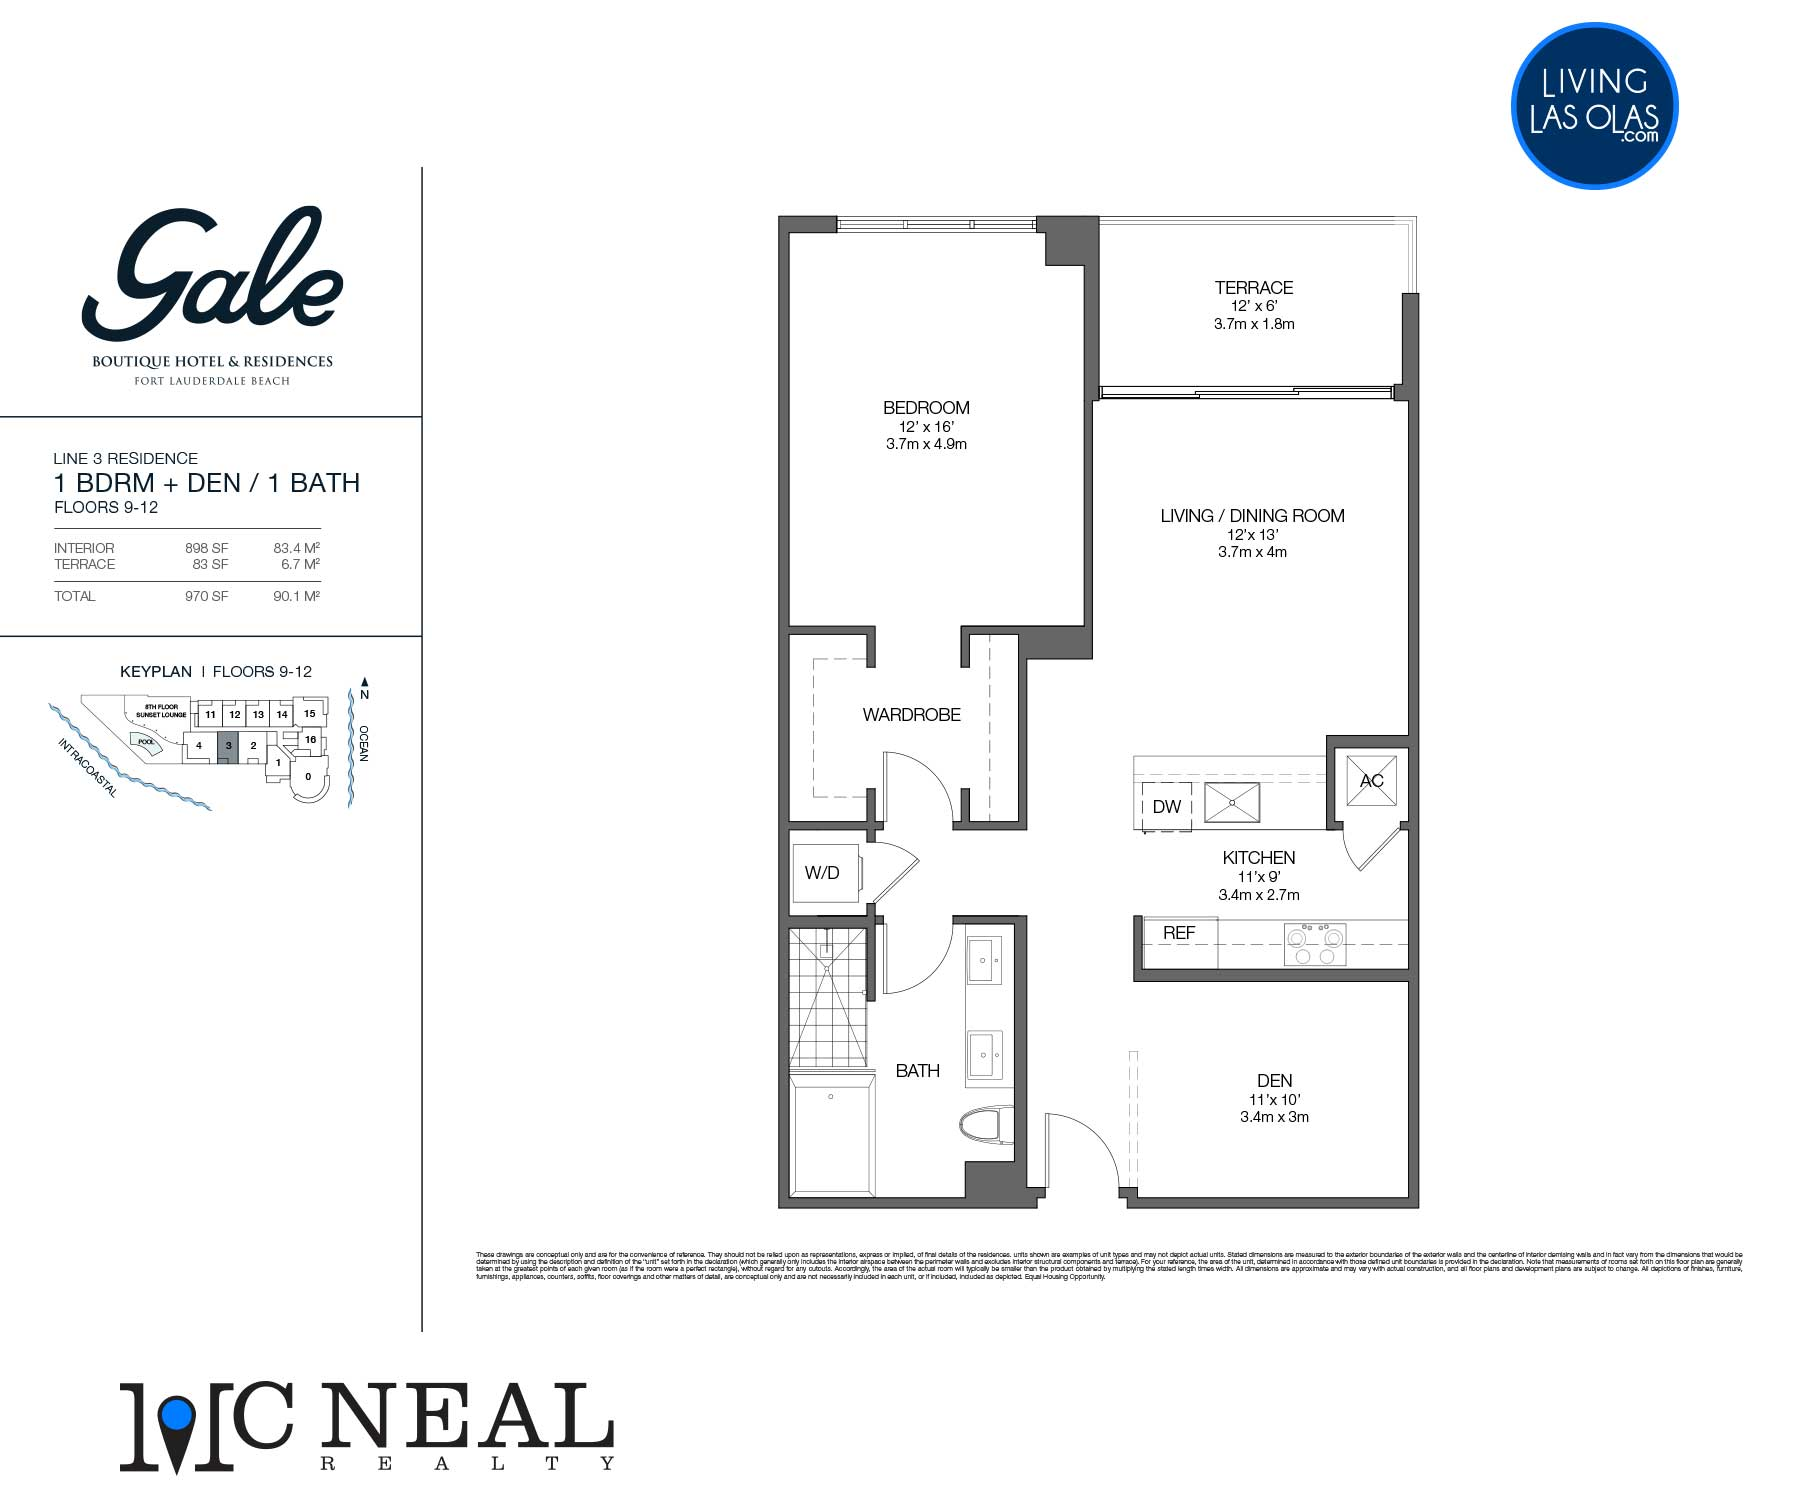 Tiffany House Condos Floor Plans Line 3